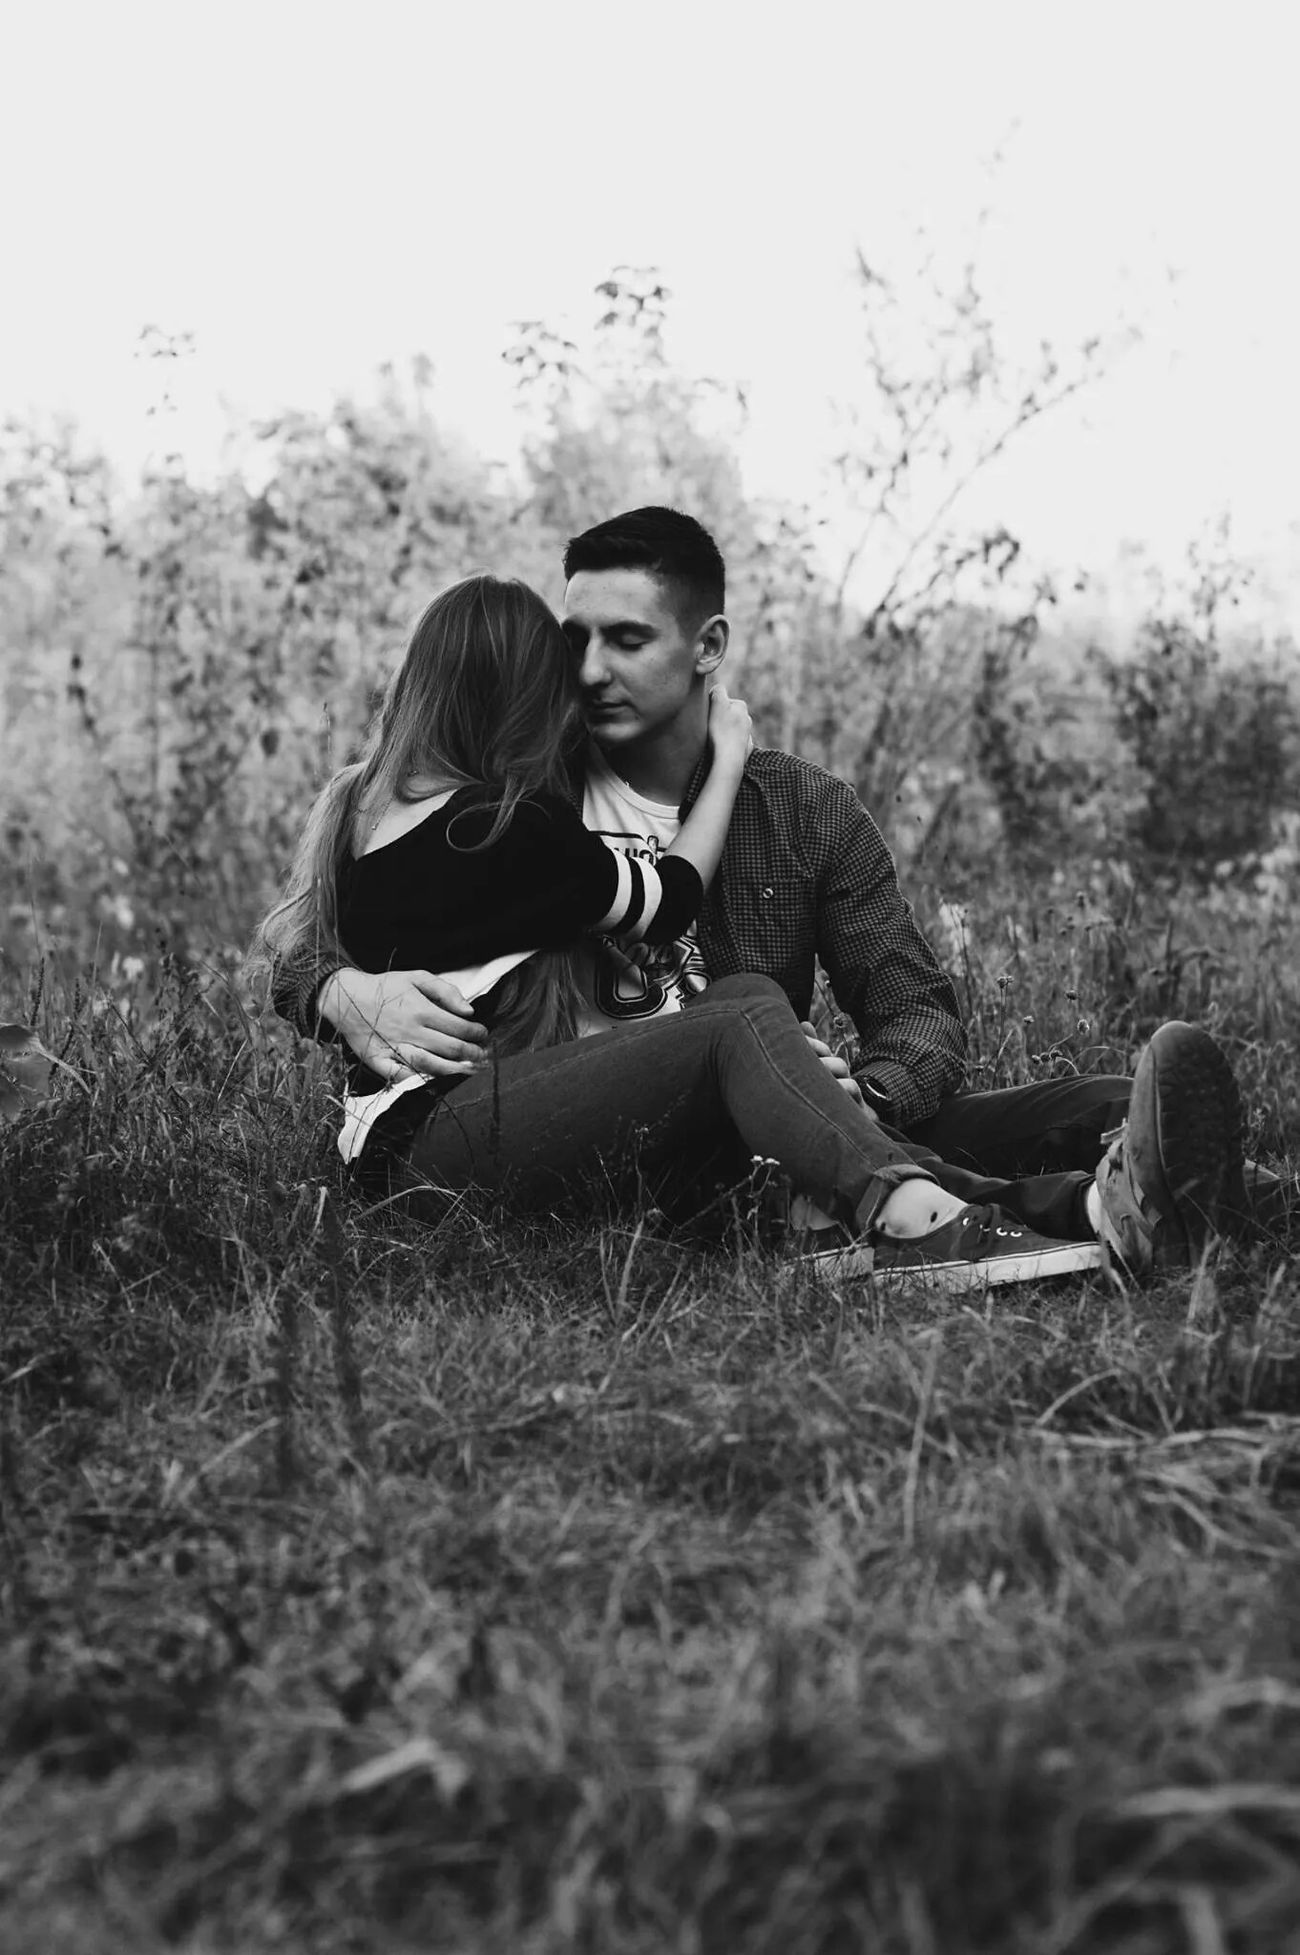 Love Sweetlove Polishgirl Polishboy  Photography Blackandwhite Modeling Model Photoshoot Photooftheday